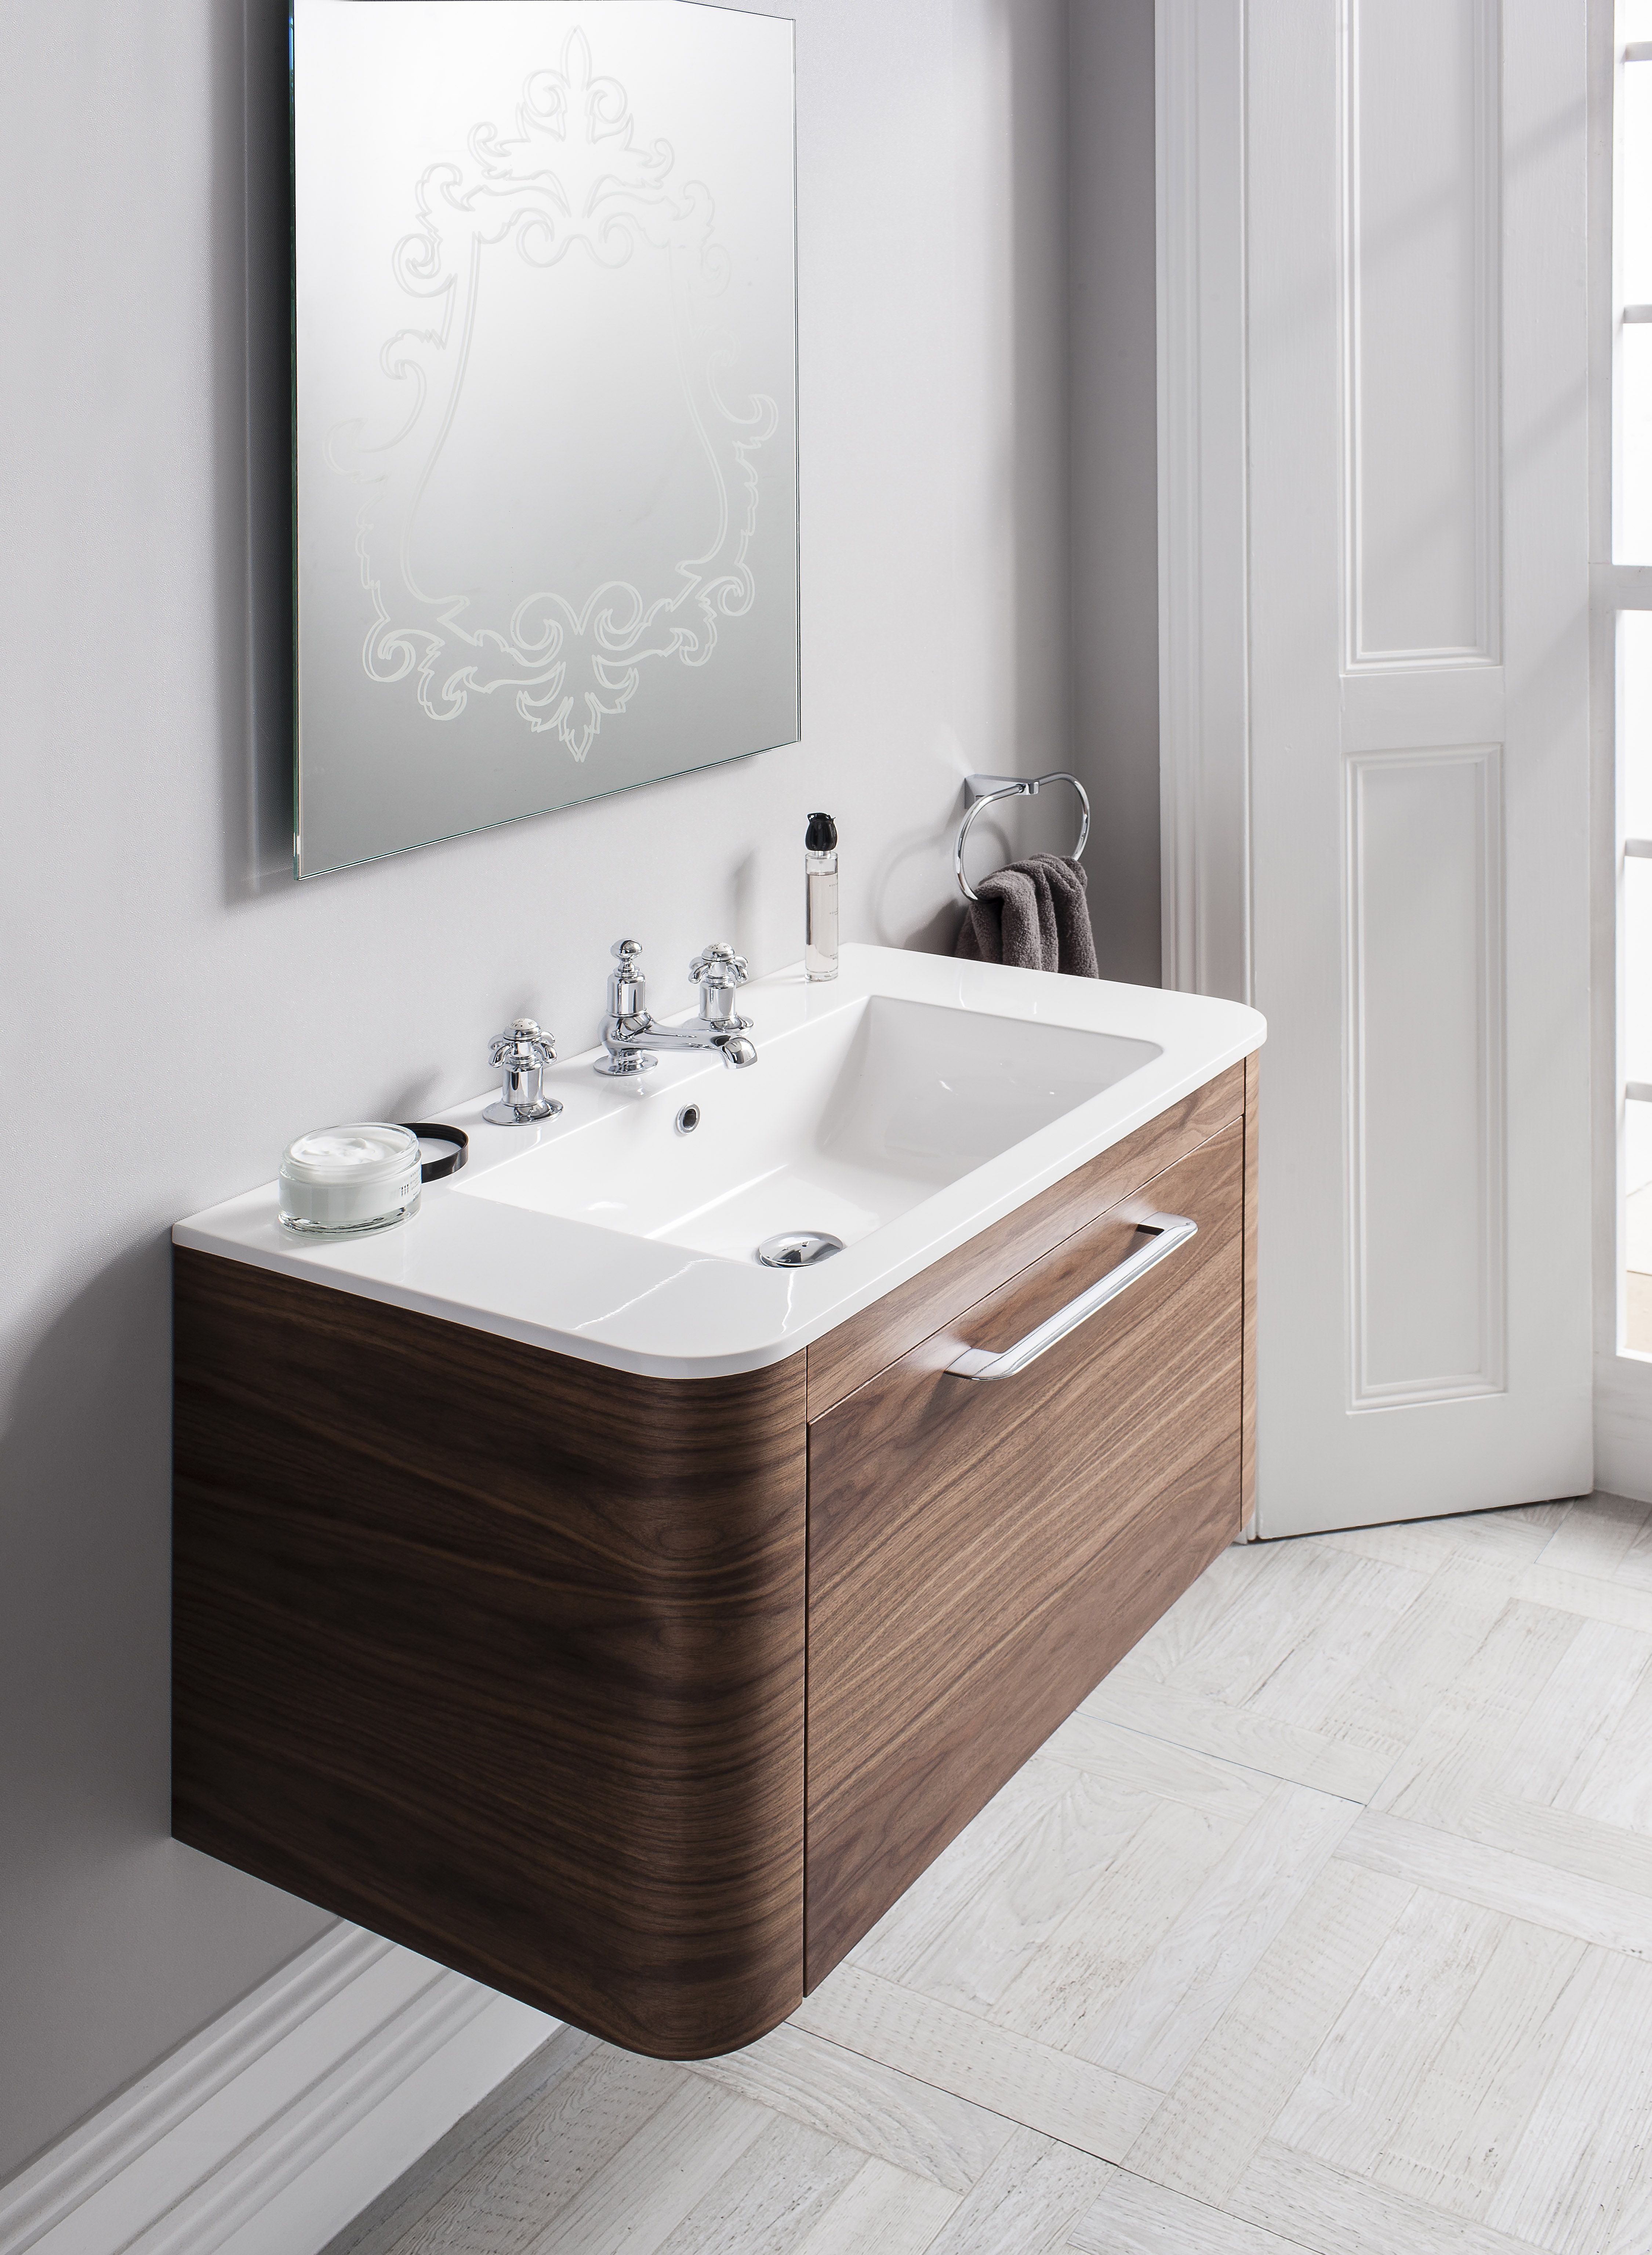 Celeste American Walnut Bathroom Furniture Unit & Basin from ...